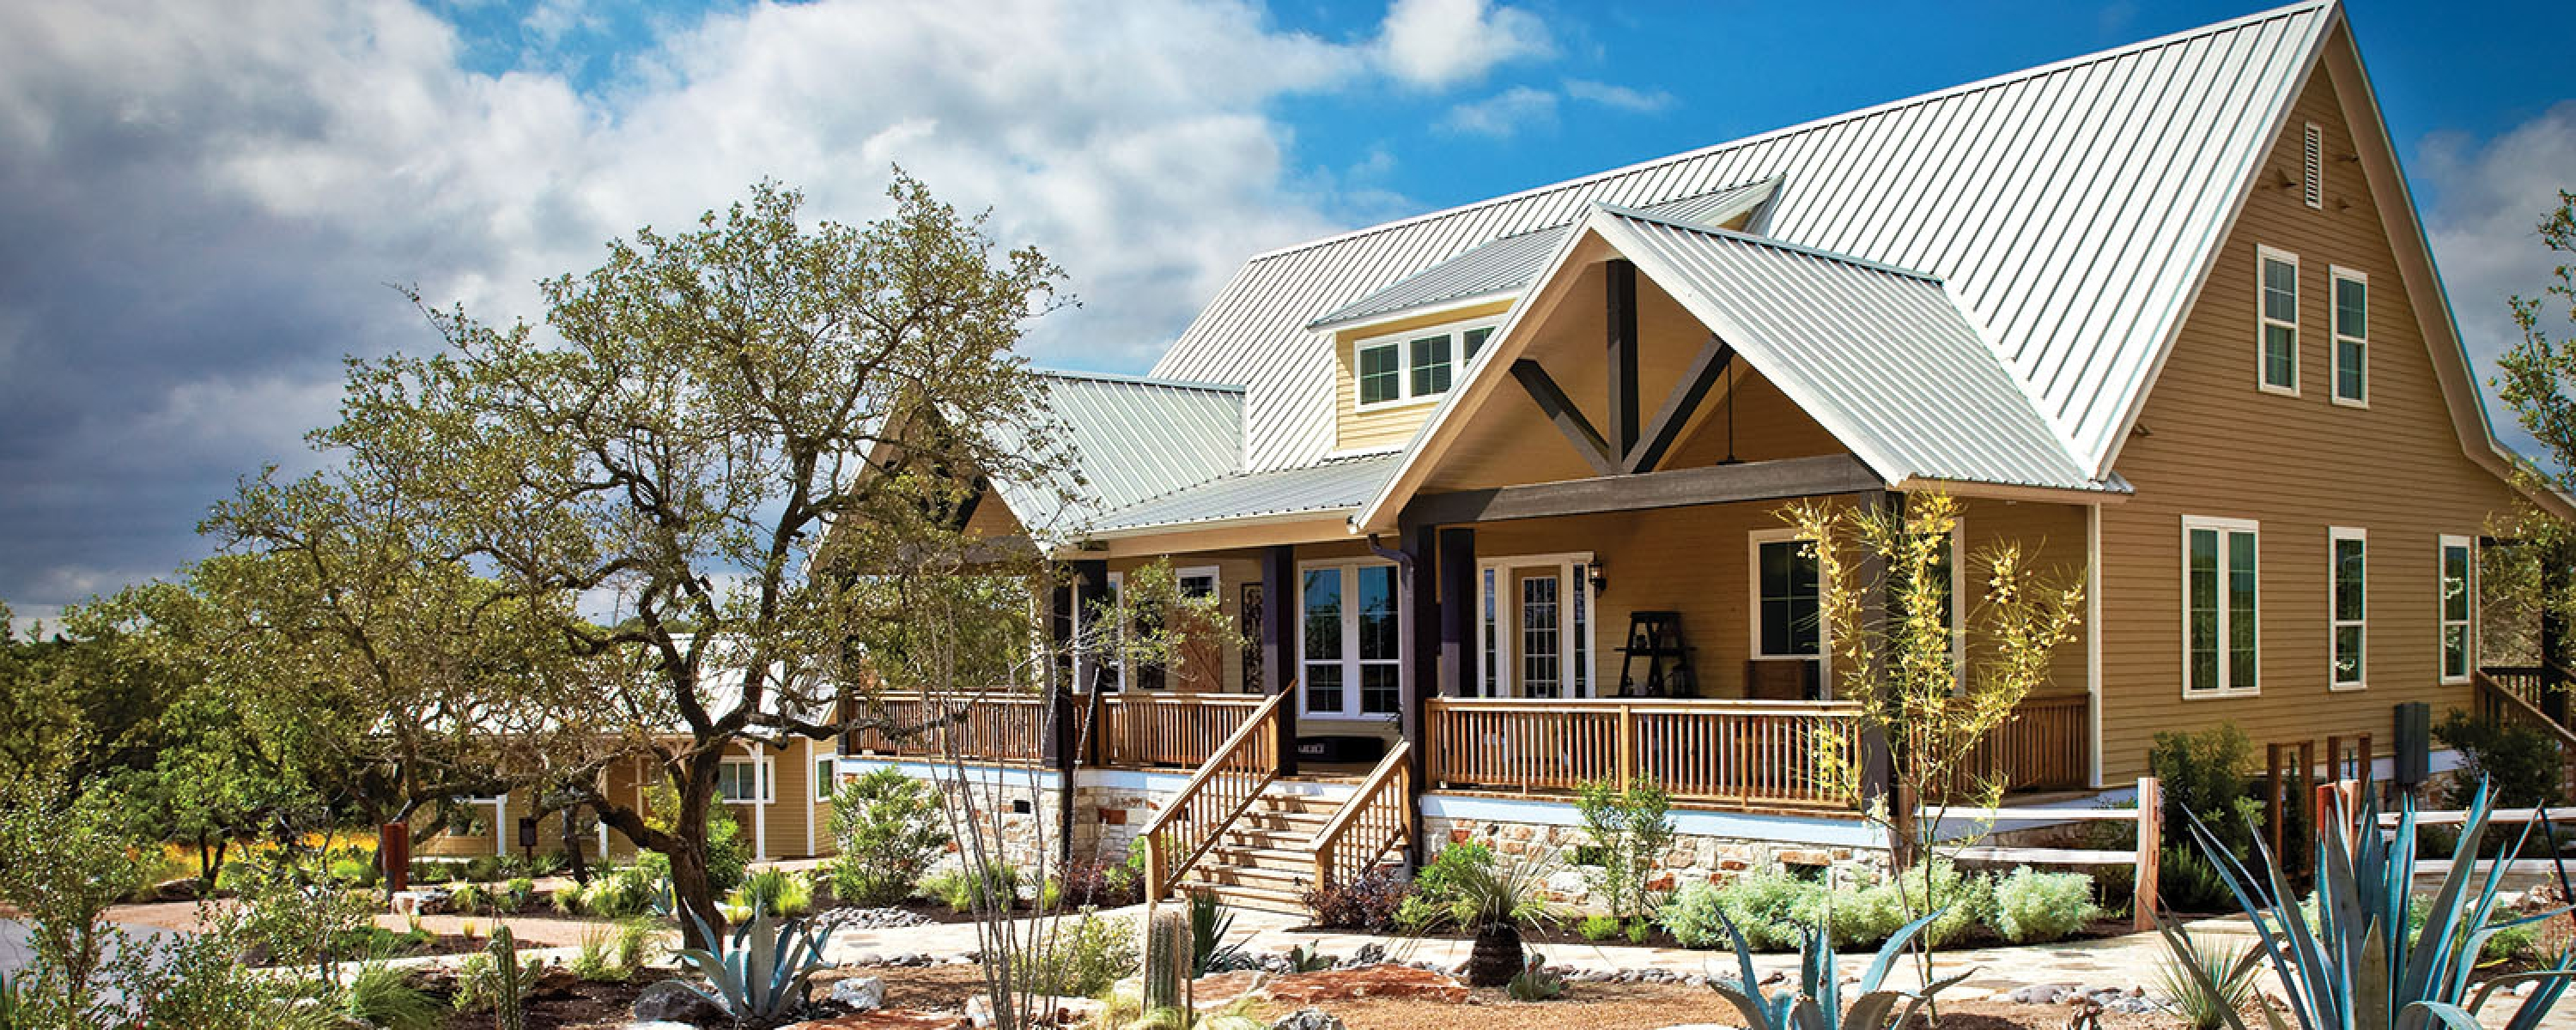 gallery round model exterior park cottages texas wimberley home casual top